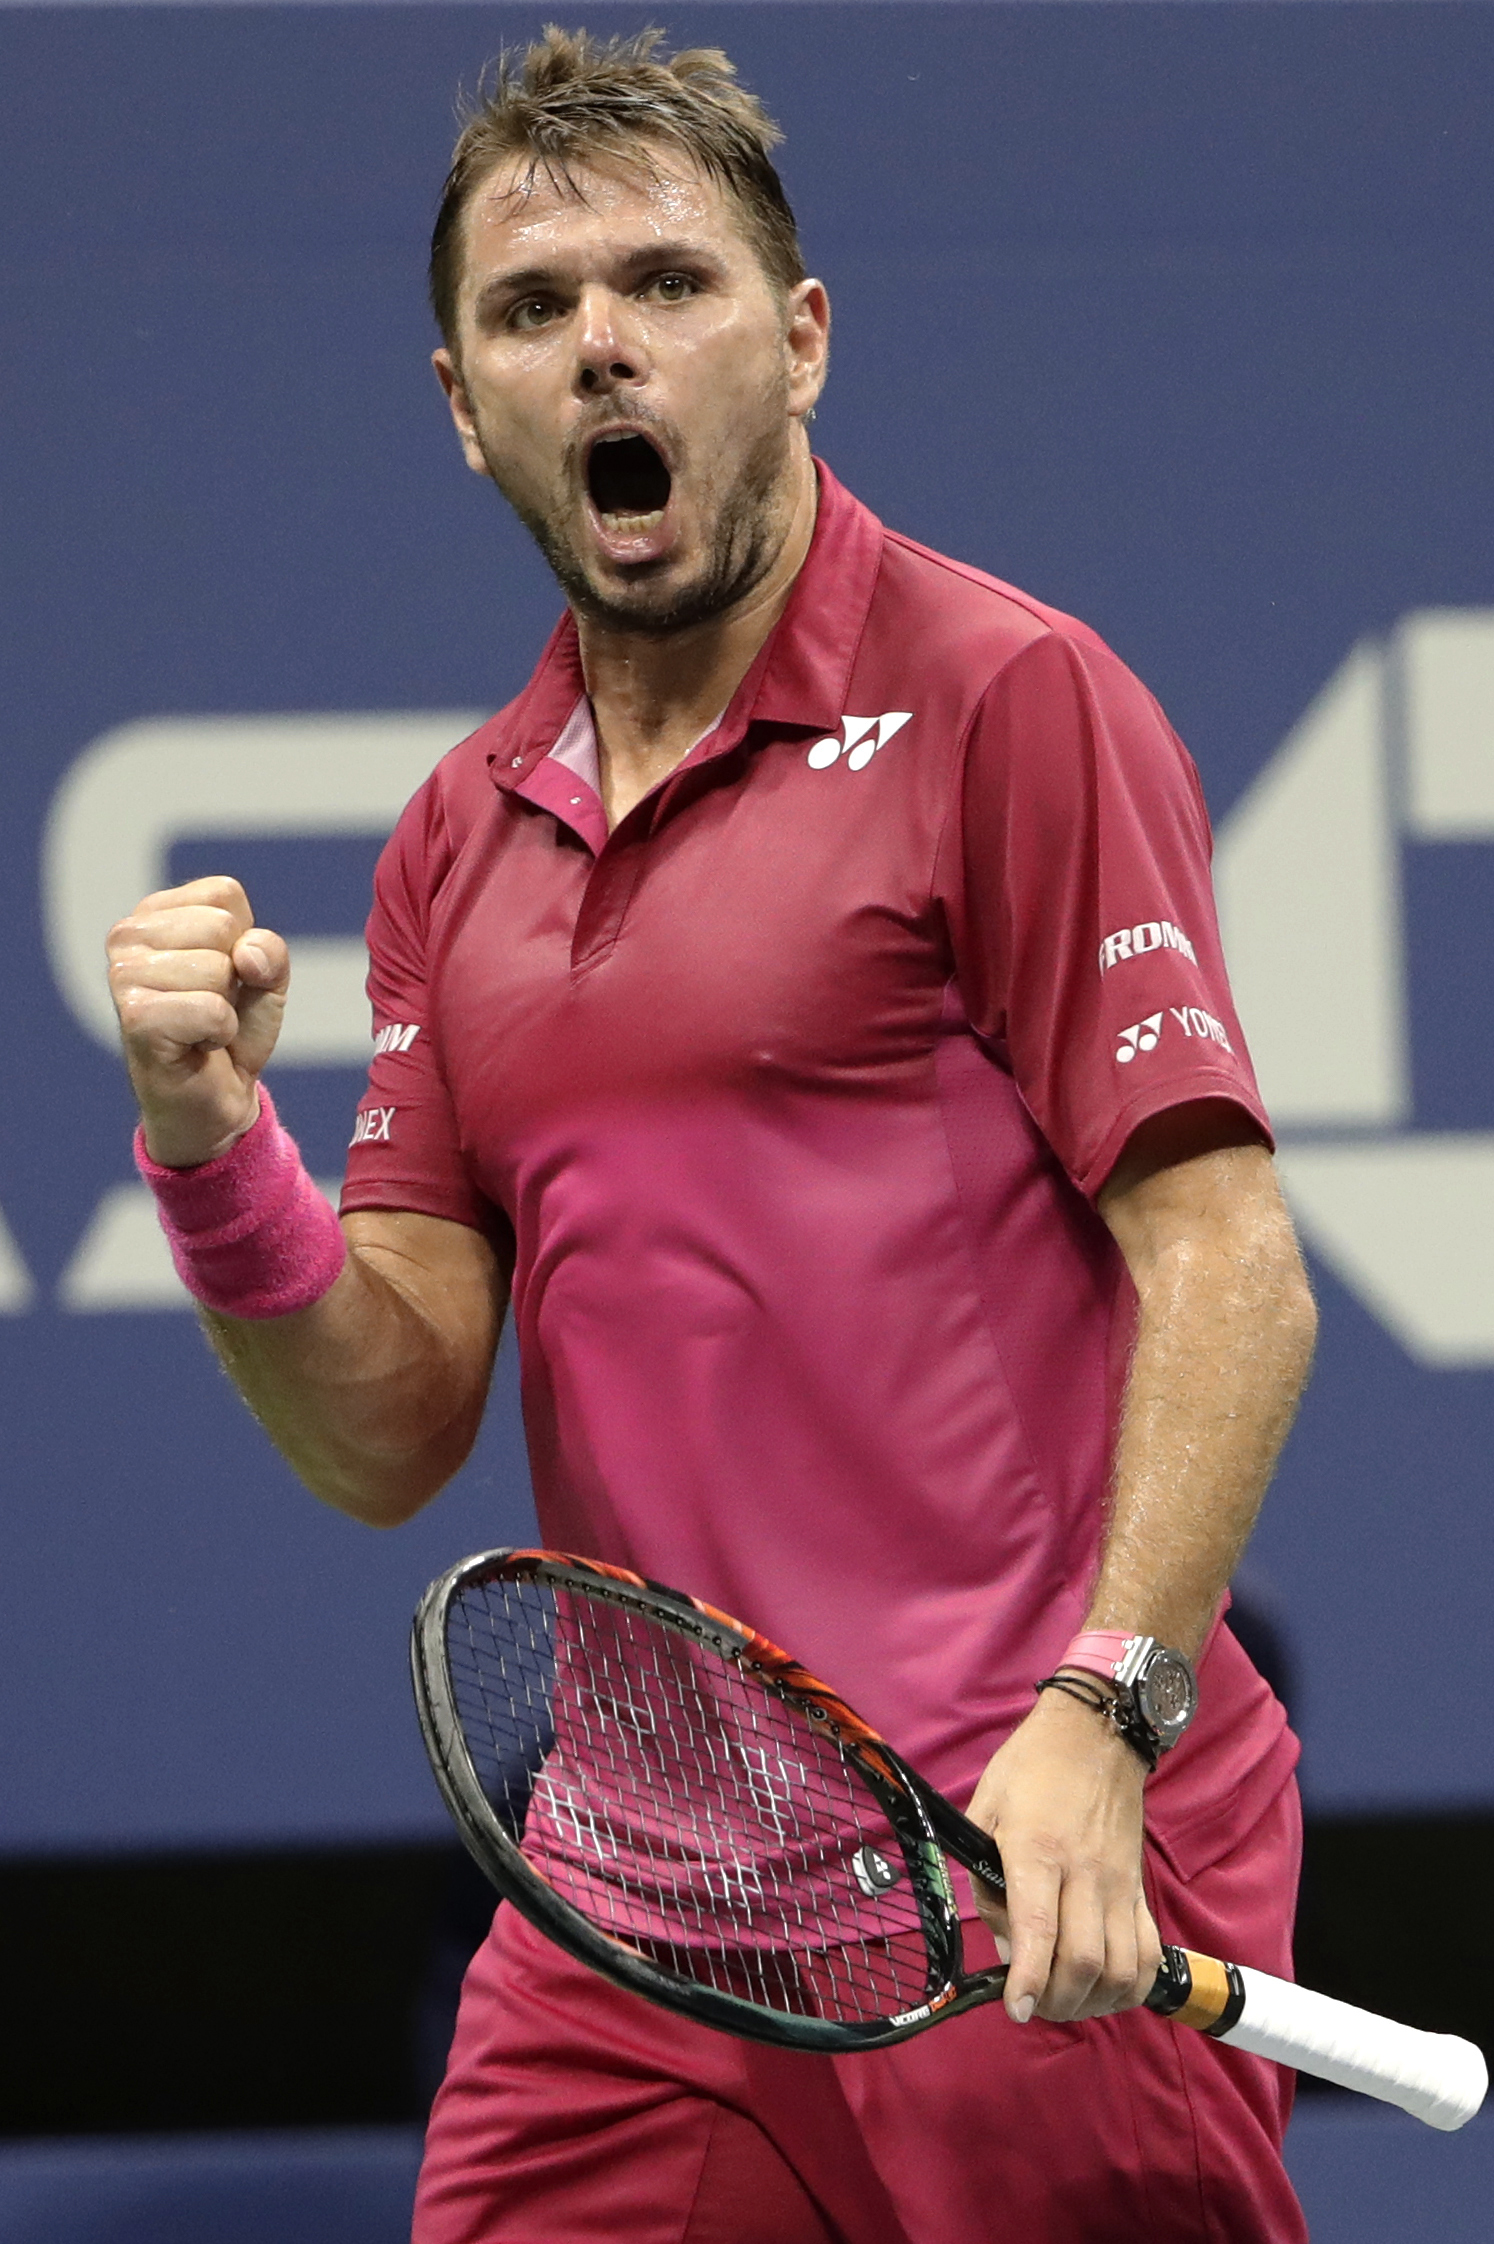 Stan Wawrinka, of Switzerland, reacts after winning a point during his match against Juan Martin del Potro, of Argentina, during the quarterfinals of the U.S. Open tennis tournament, early Thursday, Sept. 8, 2016, in New York. (AP Photo/Seth Wenig)